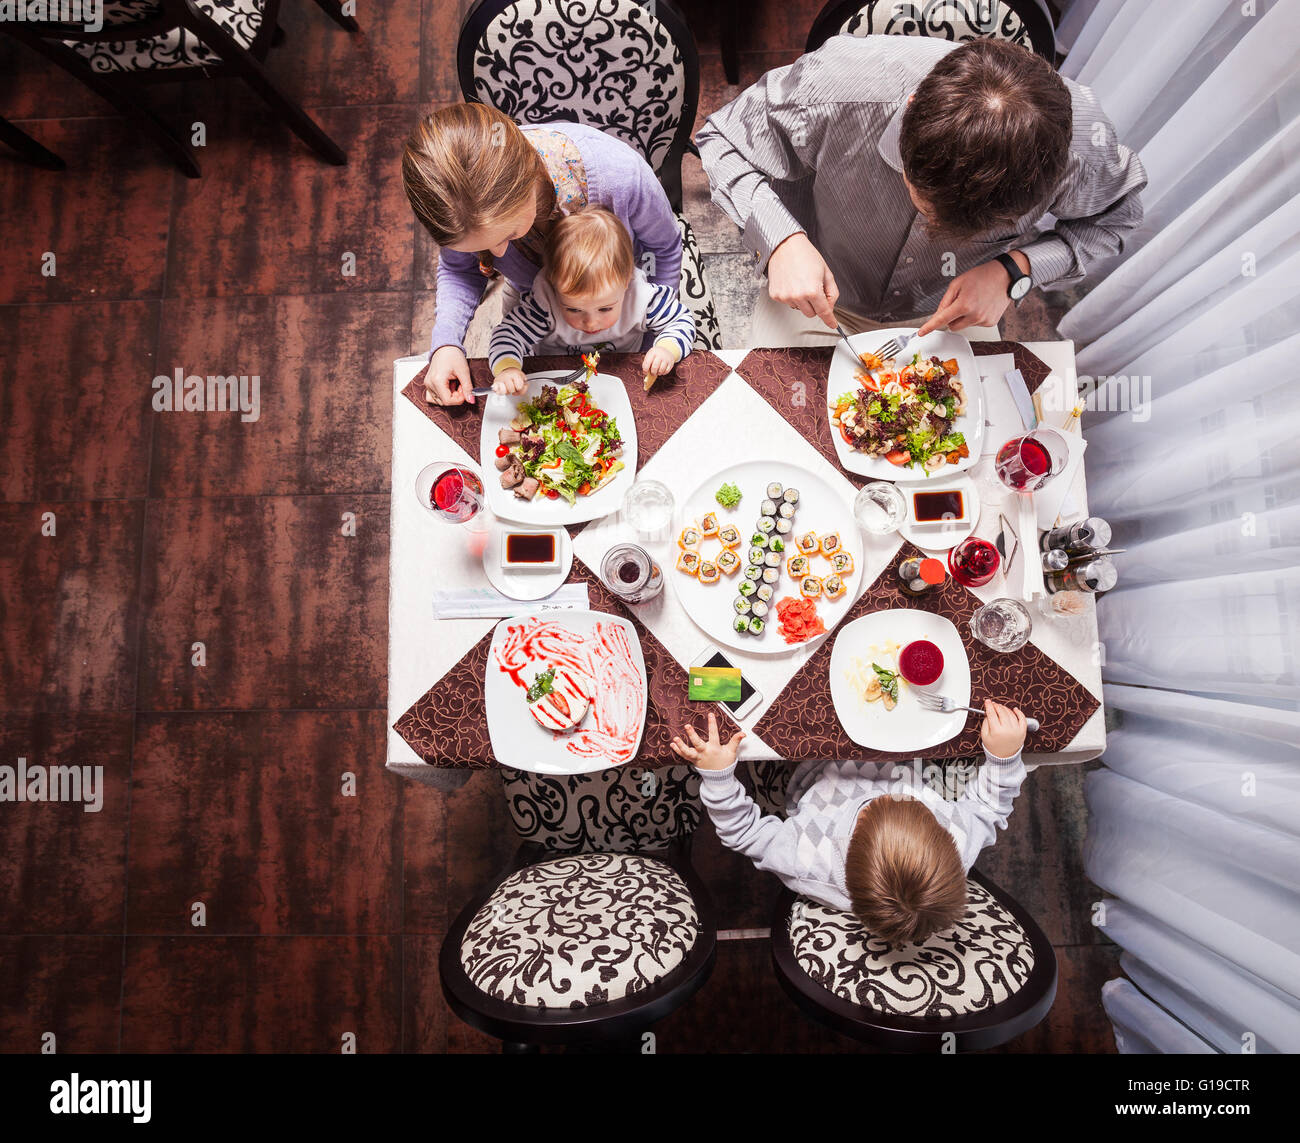 Family of four having meal at a restaurant - Stock Image